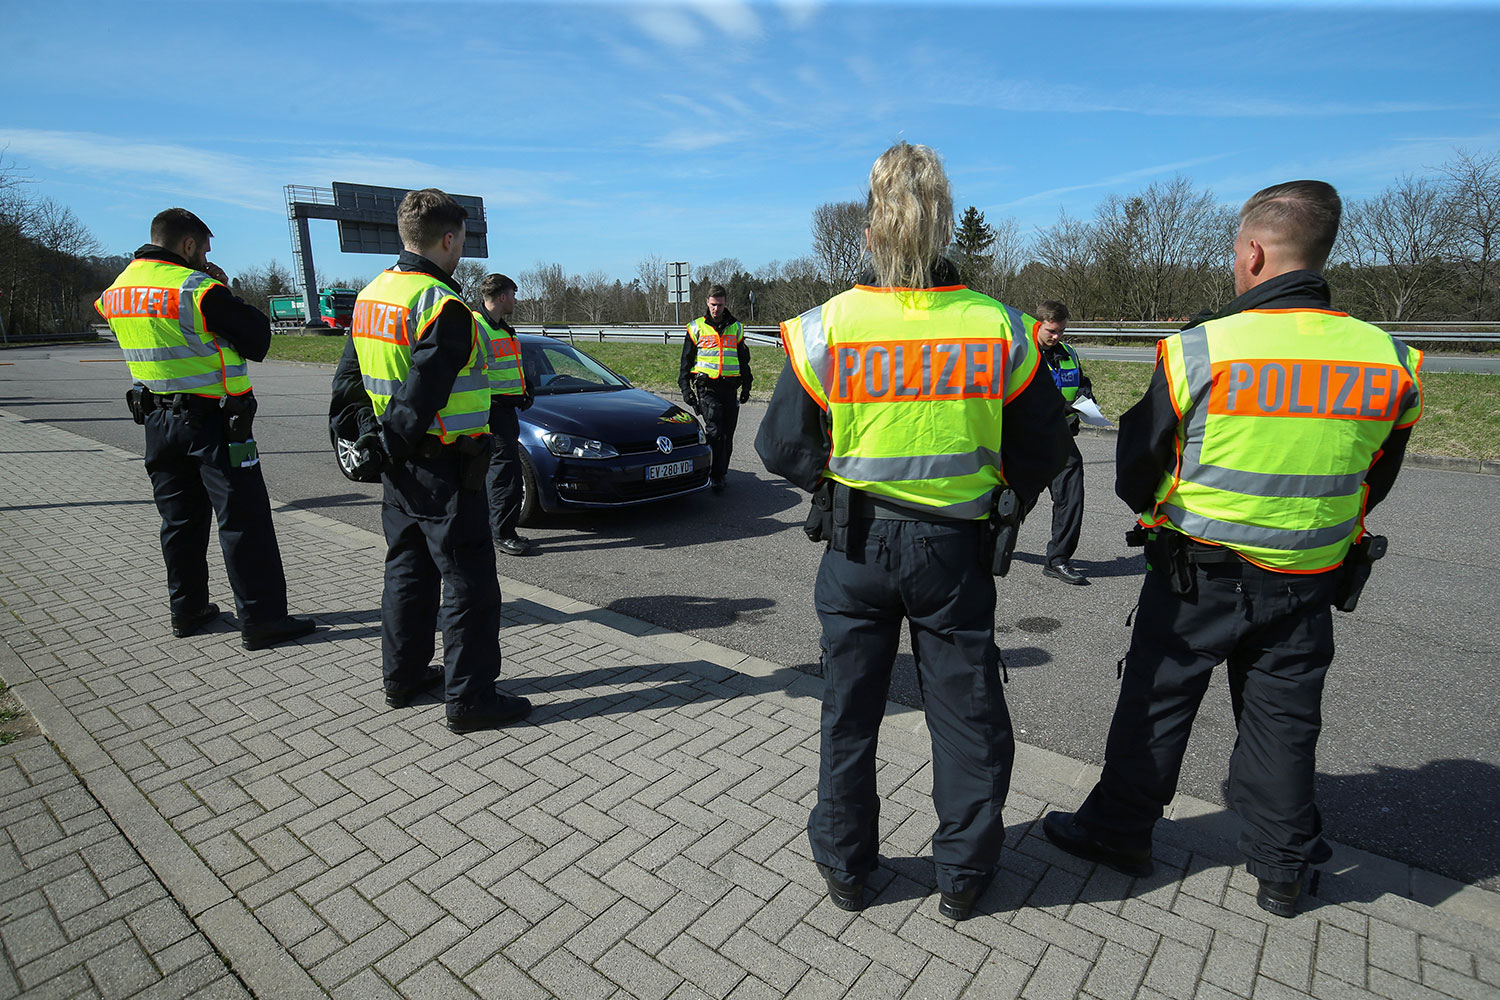 The photo shows several uniformed officers wearing yellow vests halting motorists at a checkpoint.